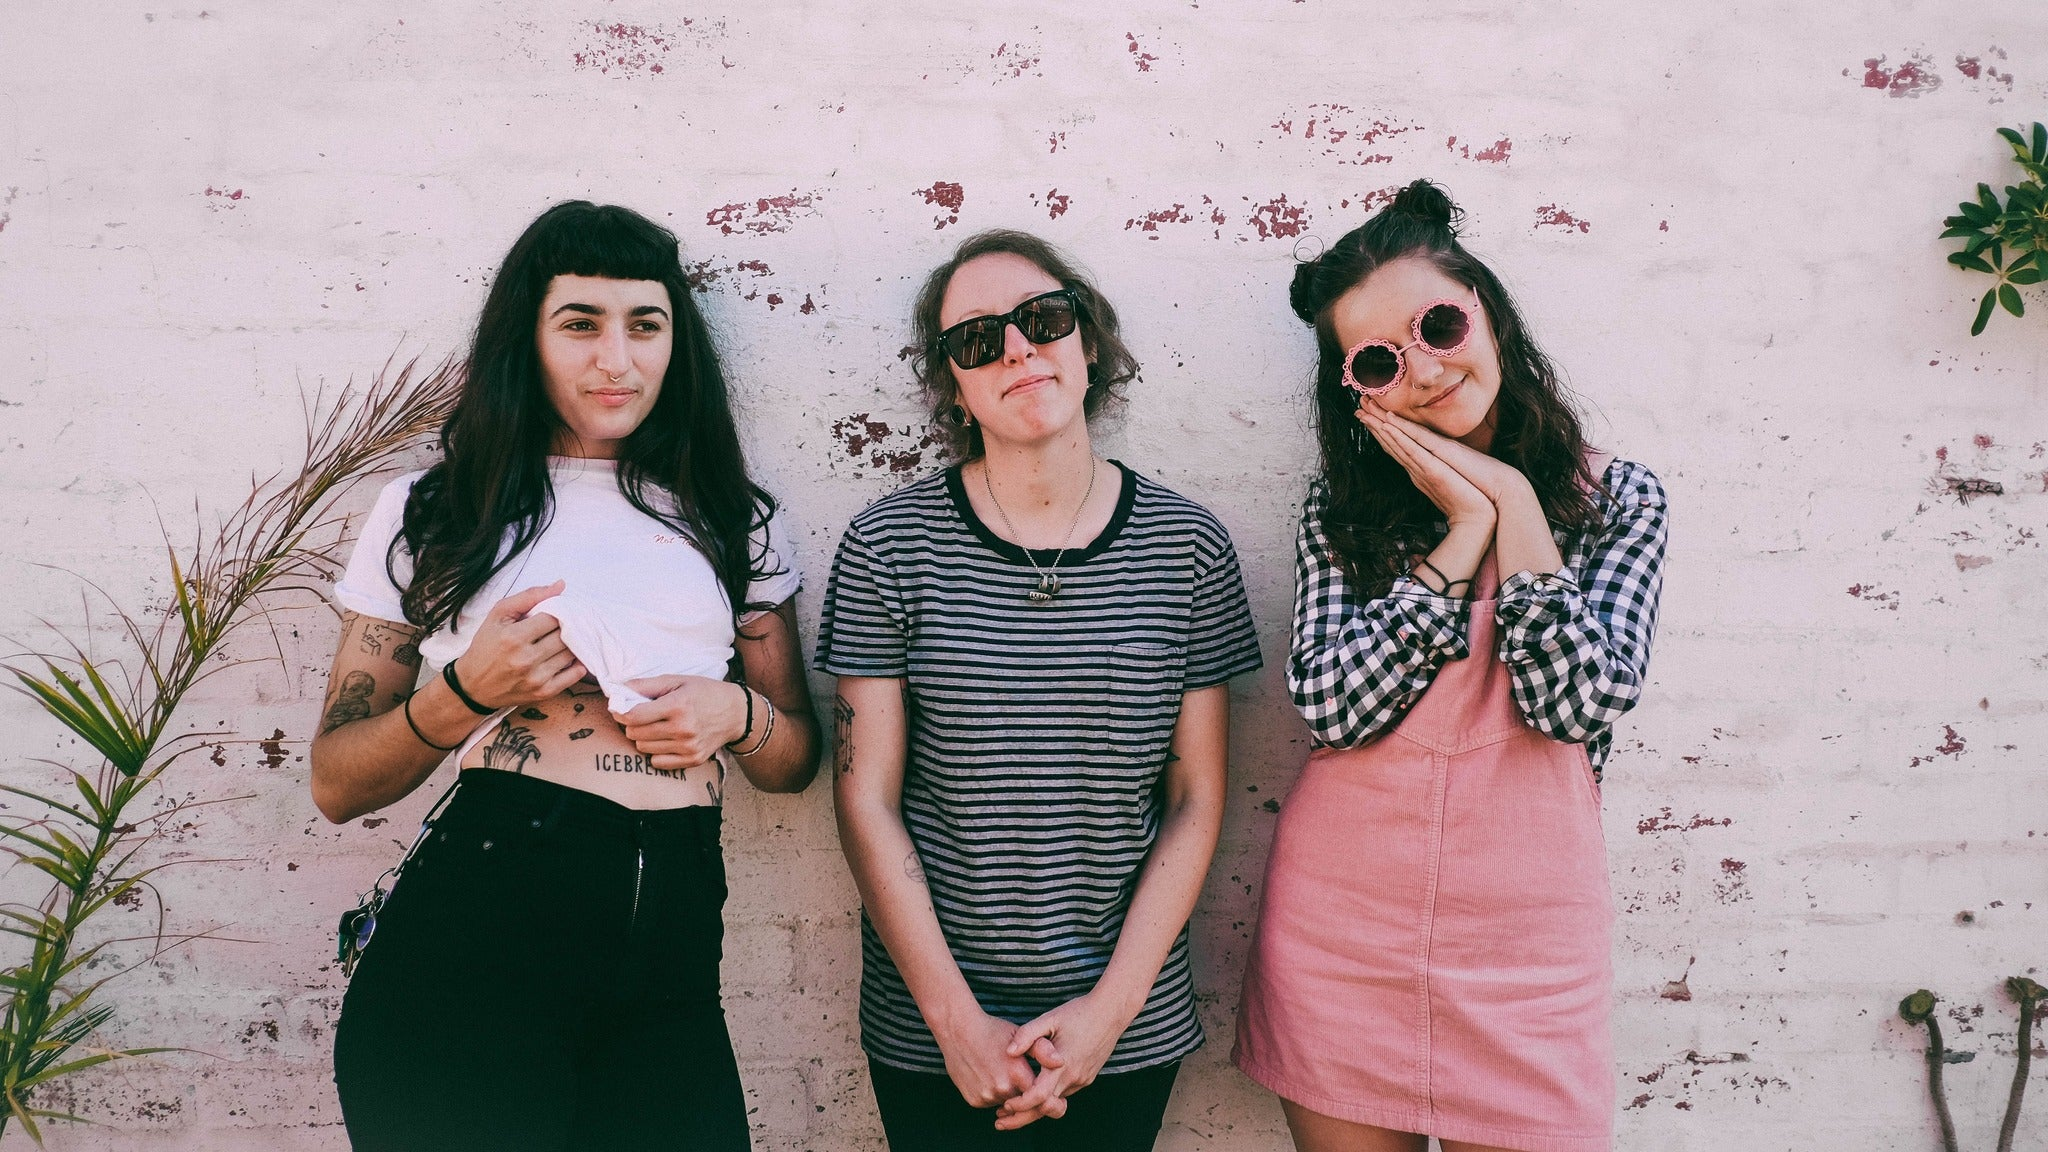 Camp Cope / Petal at Marquis Theater